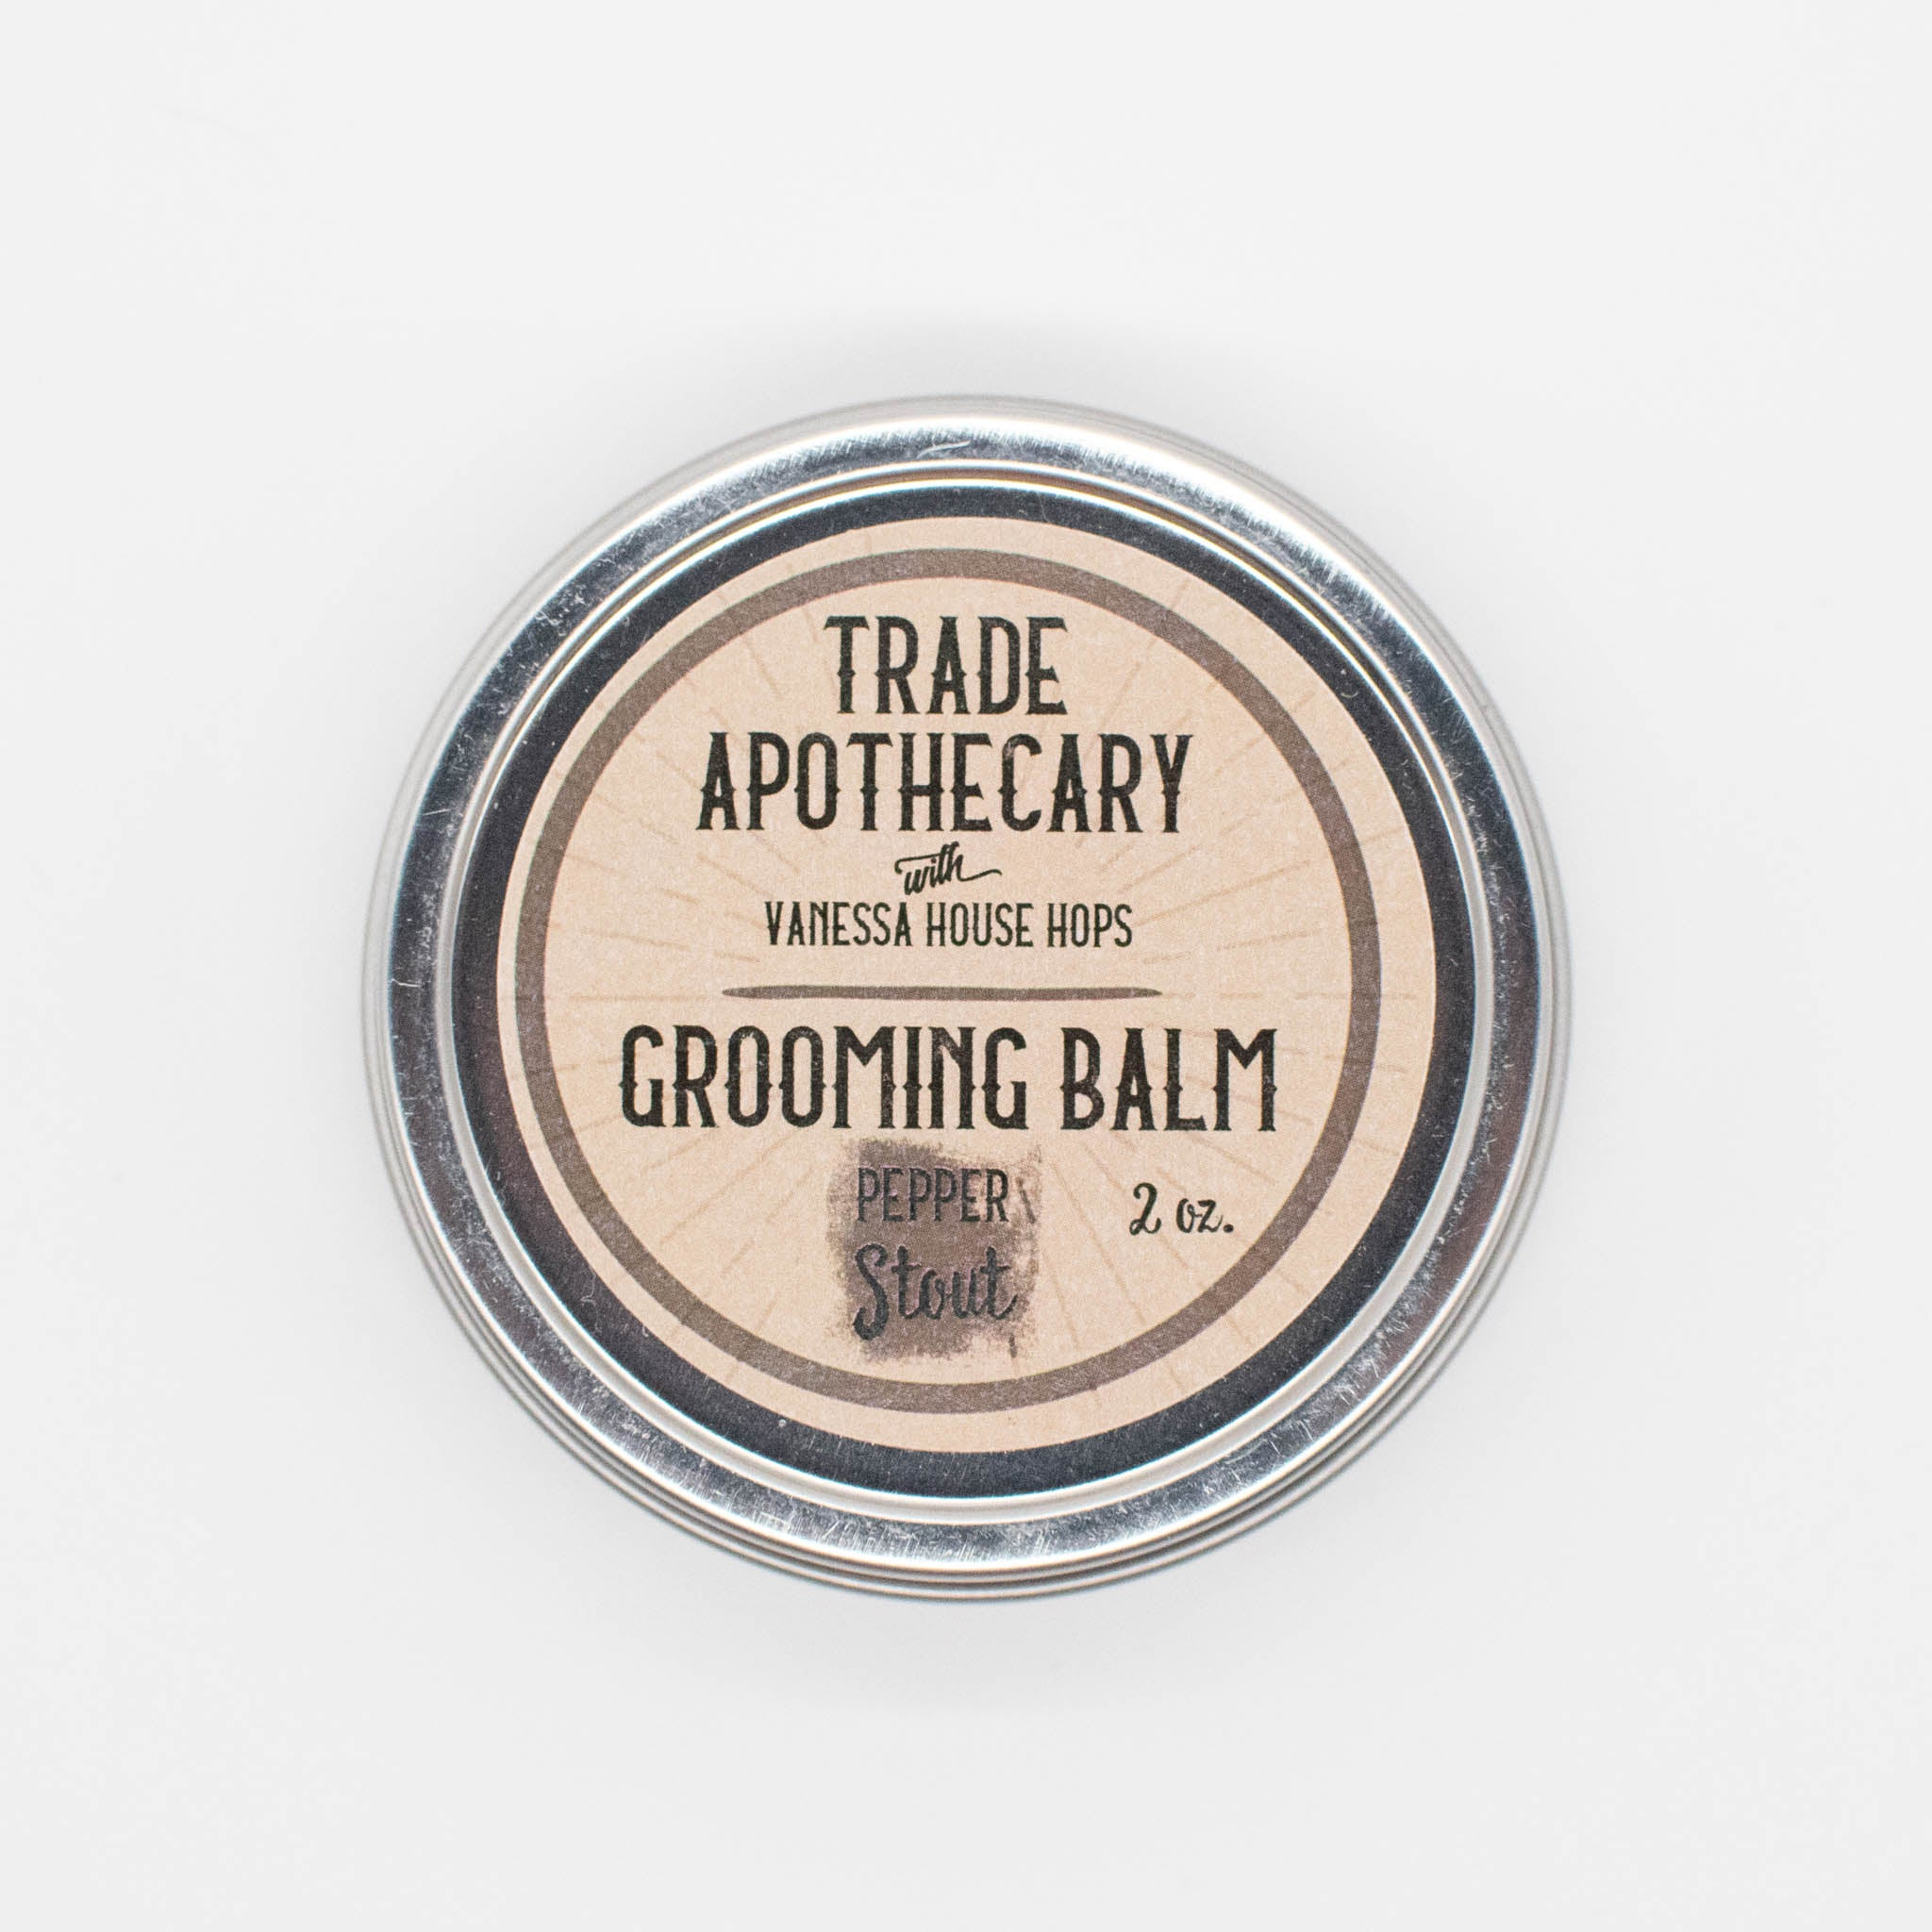 Pepper Stout Grooming Balm